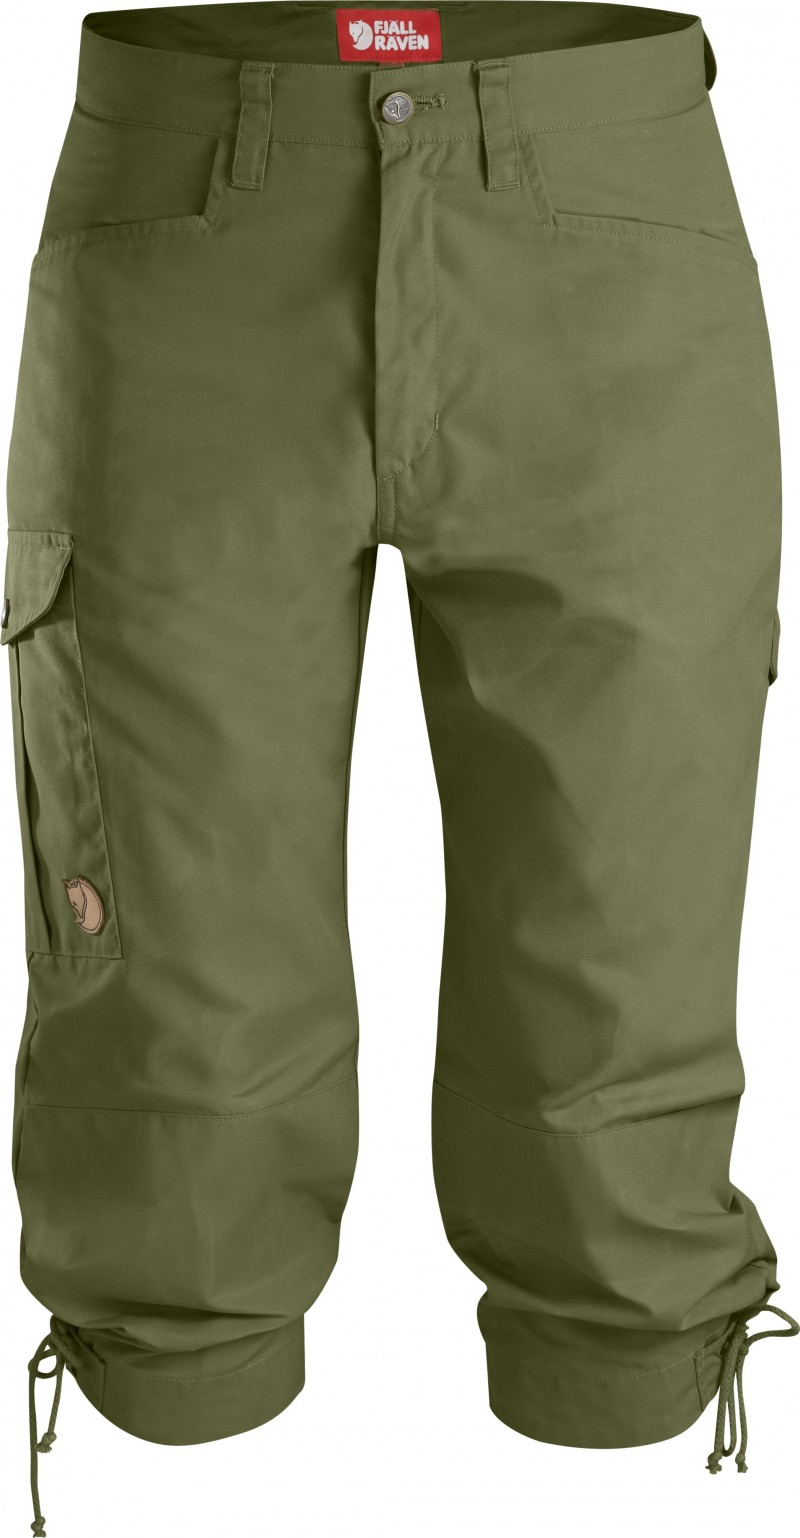 FjallRaven Iceland Knickers W. Green-30